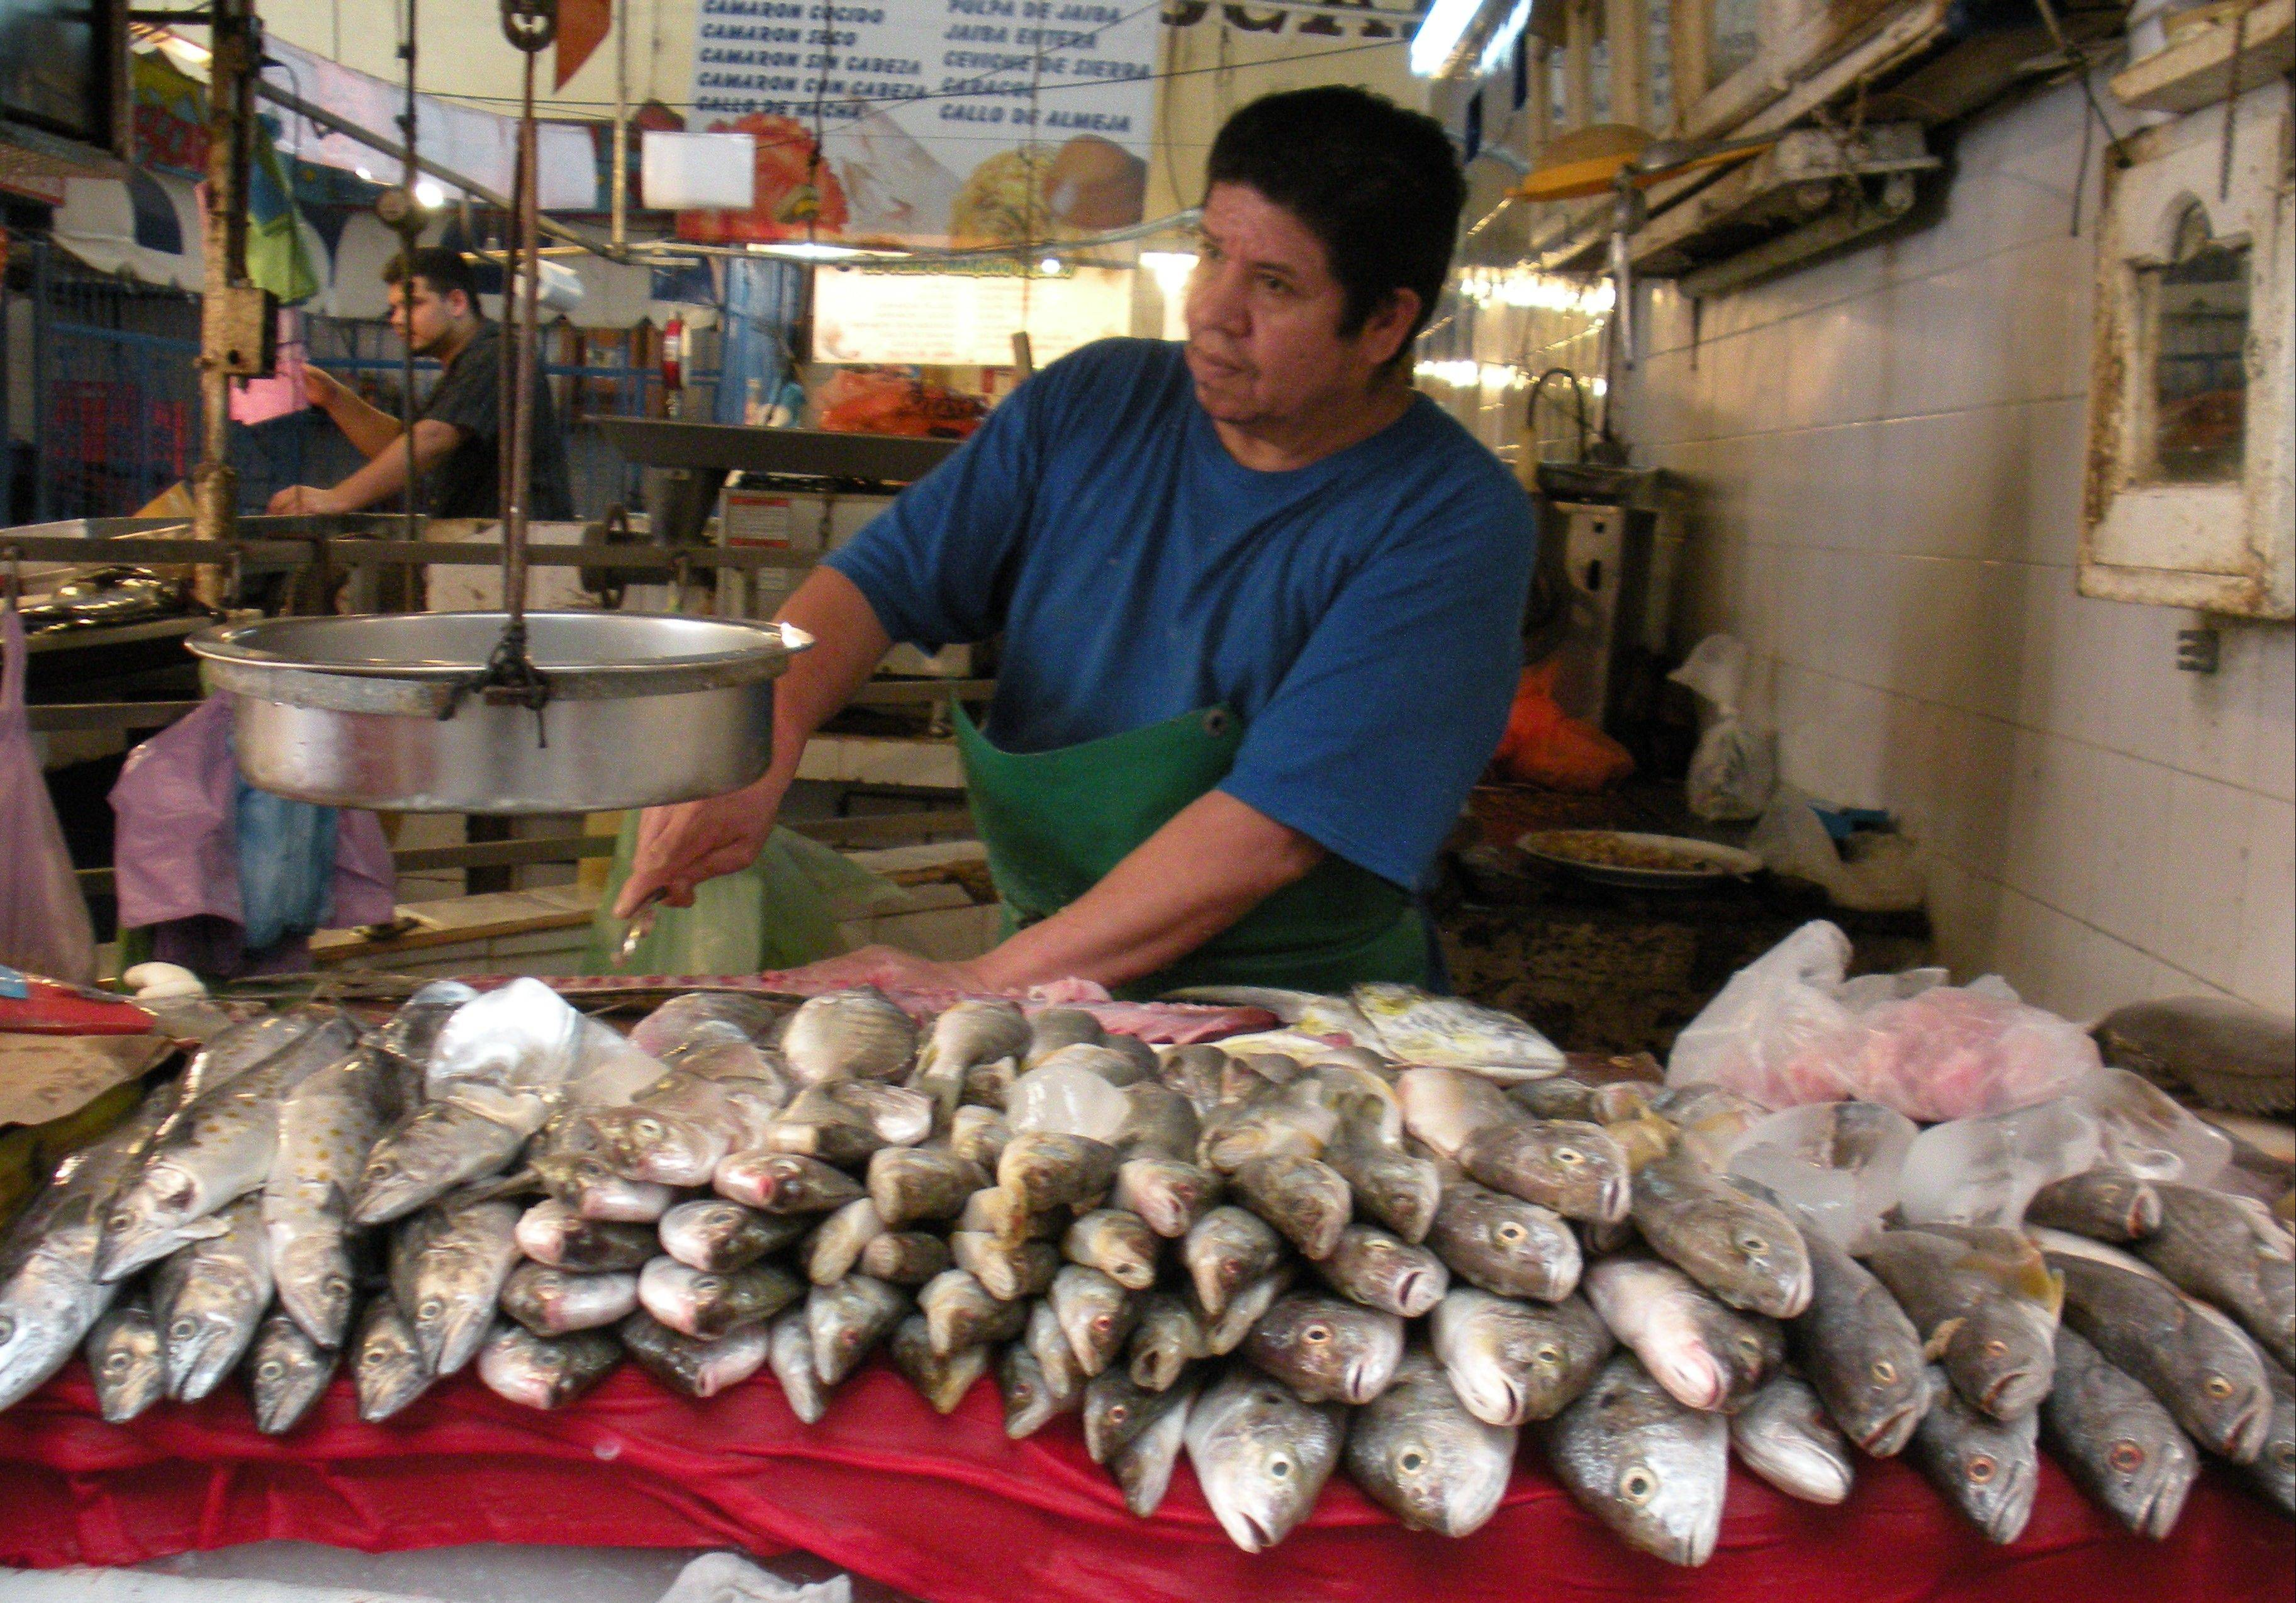 One of many fishmongers sells the morning's catch at the Pino Suarez Market in historic Old Mazatlan.